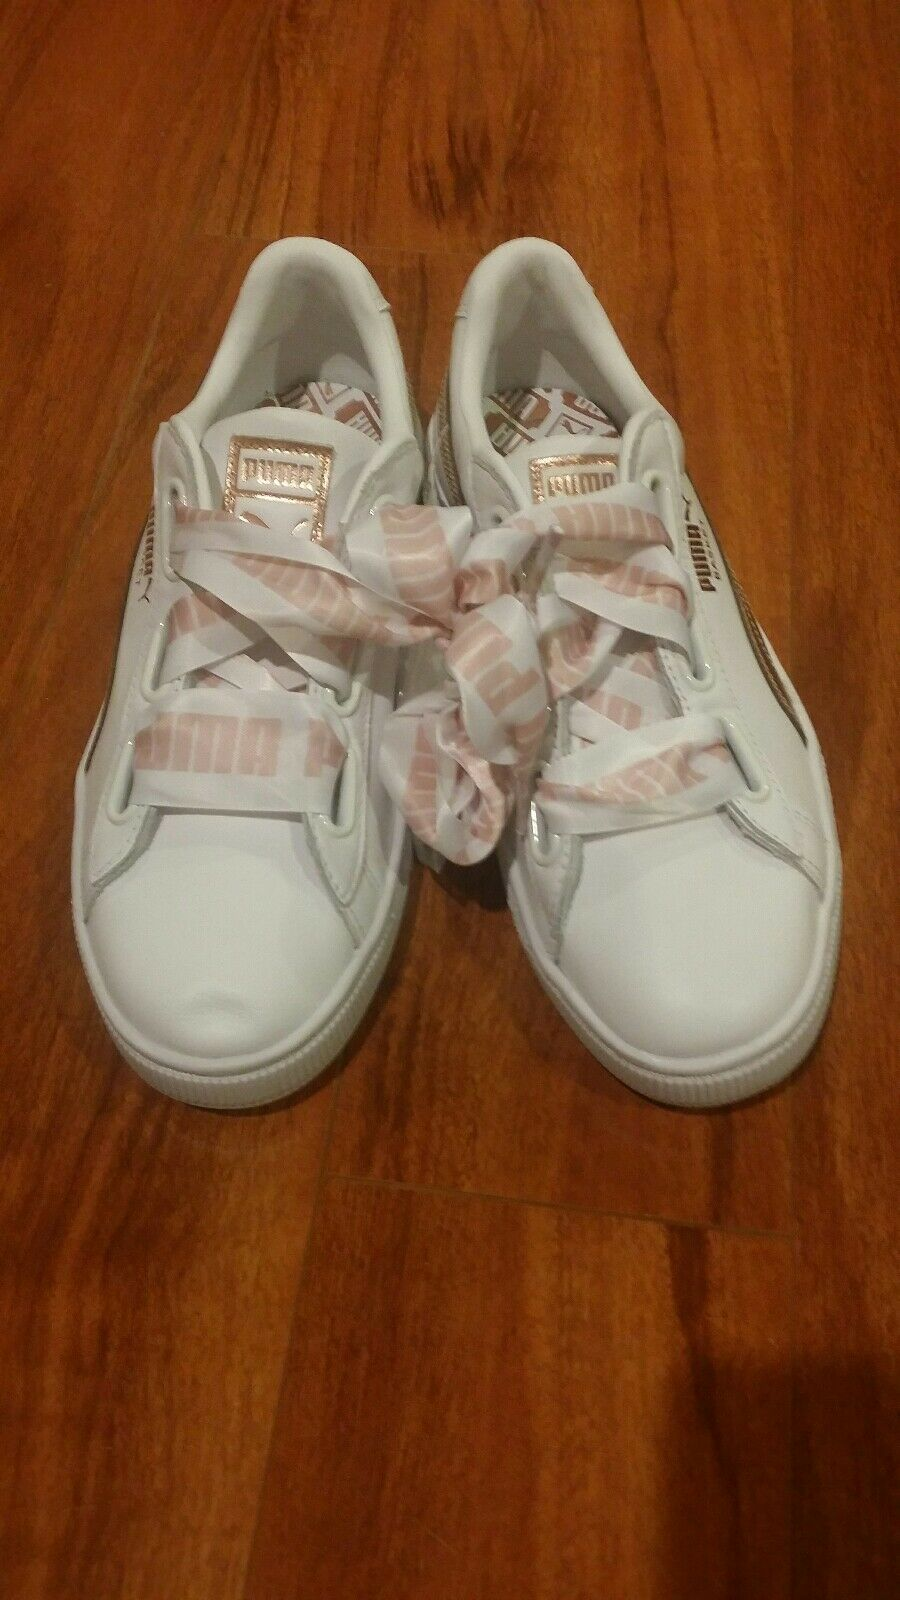 Brand New Puma Basket heart style femmes Taille us 7 uk 6.5 chaussures nwot